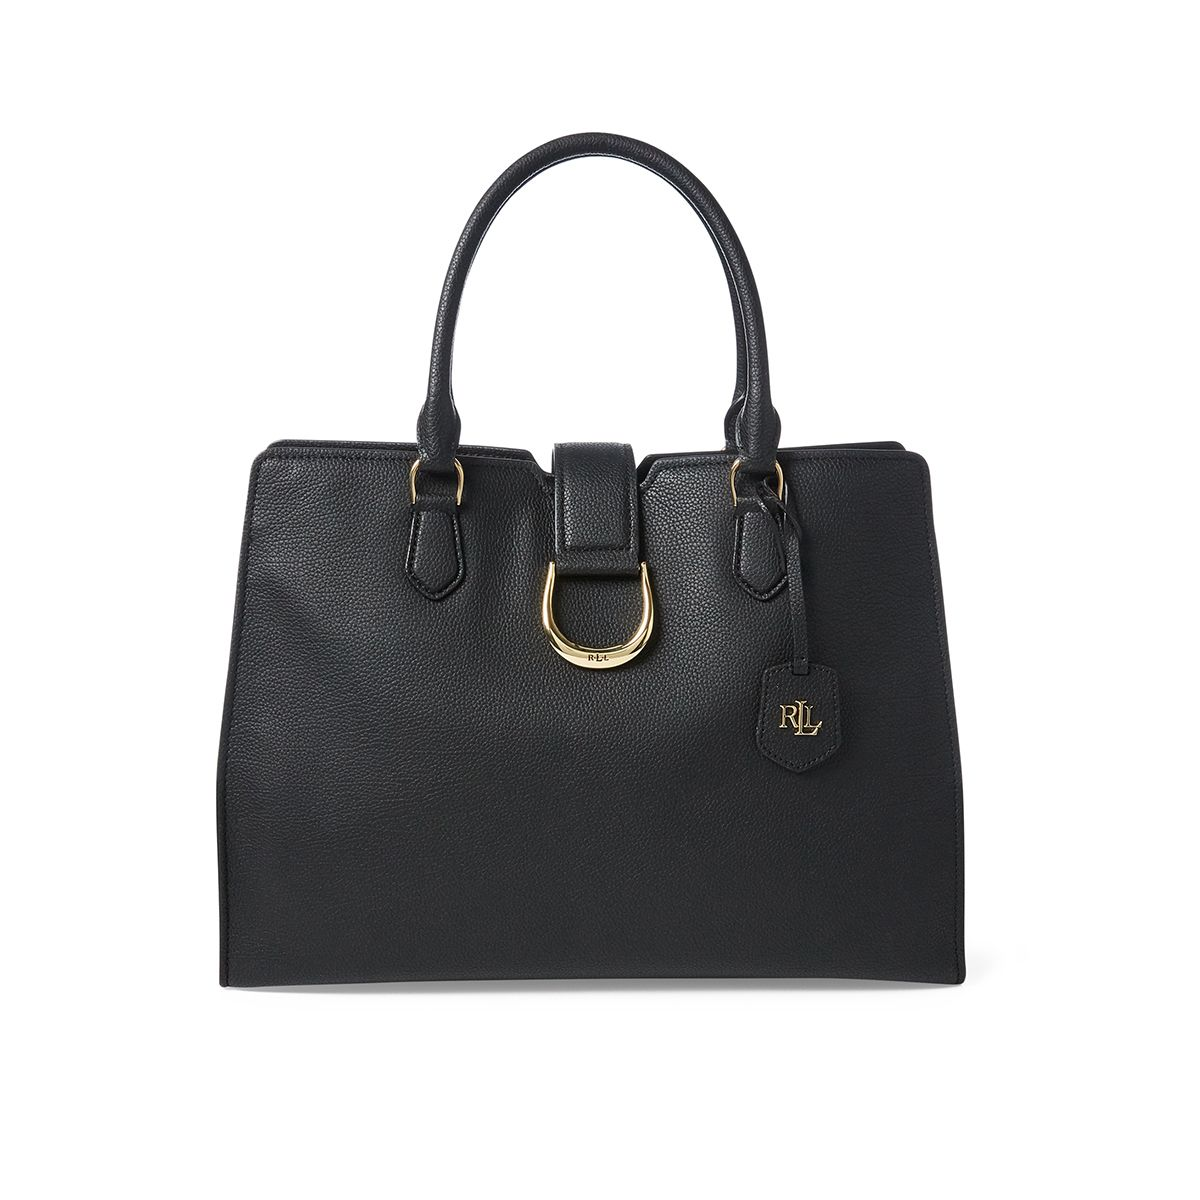 Ralph Lauren Handbags   Accessories - Macy s 187f045231